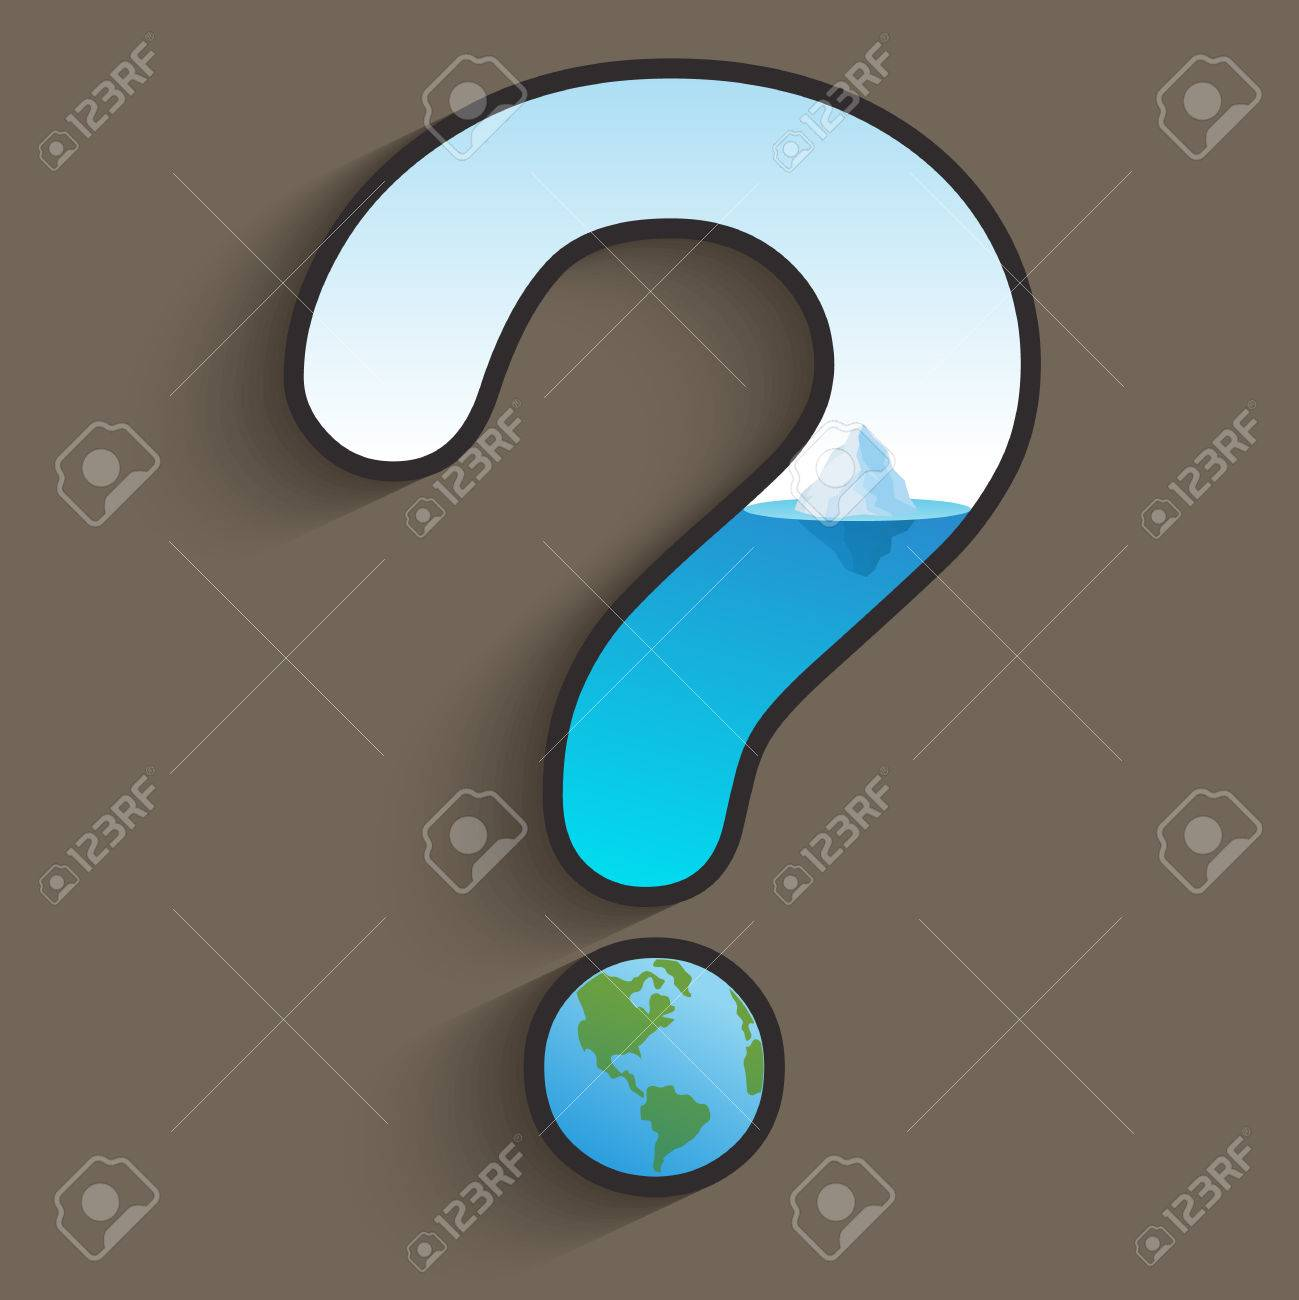 Global warming question?